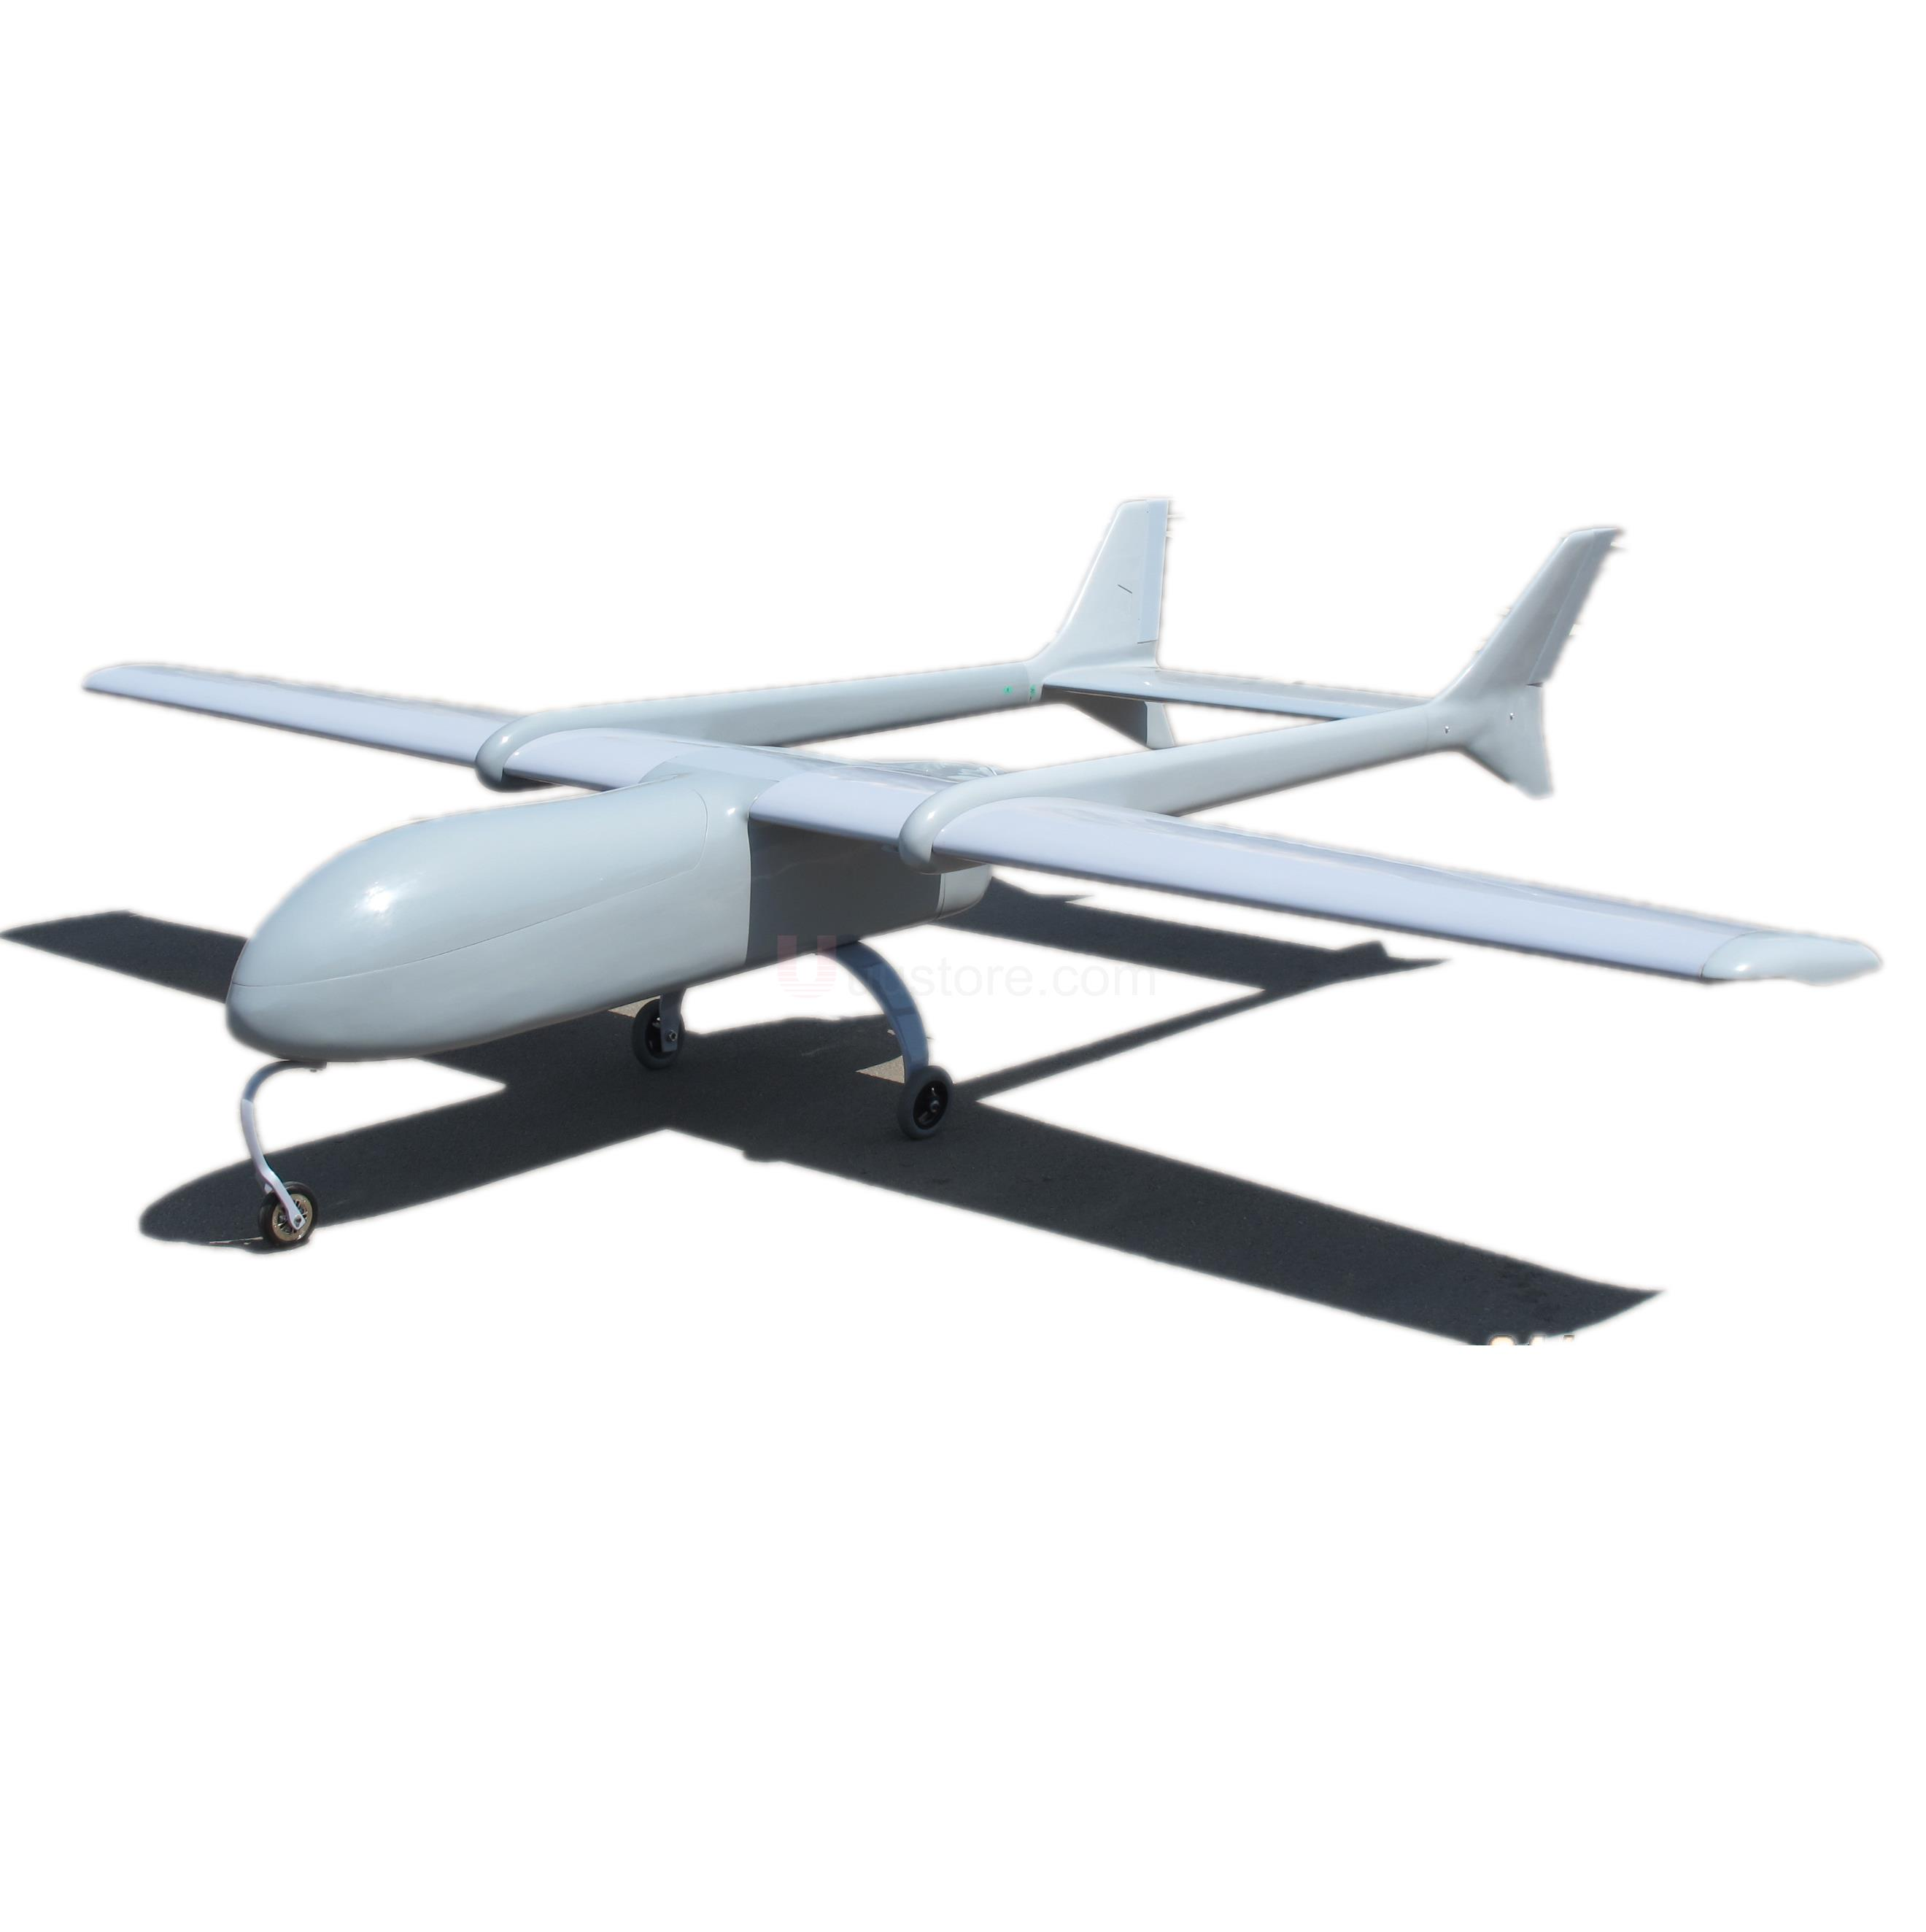 US20160284221A1 - Route planning for unmanned aerial vehicles - Google Patents